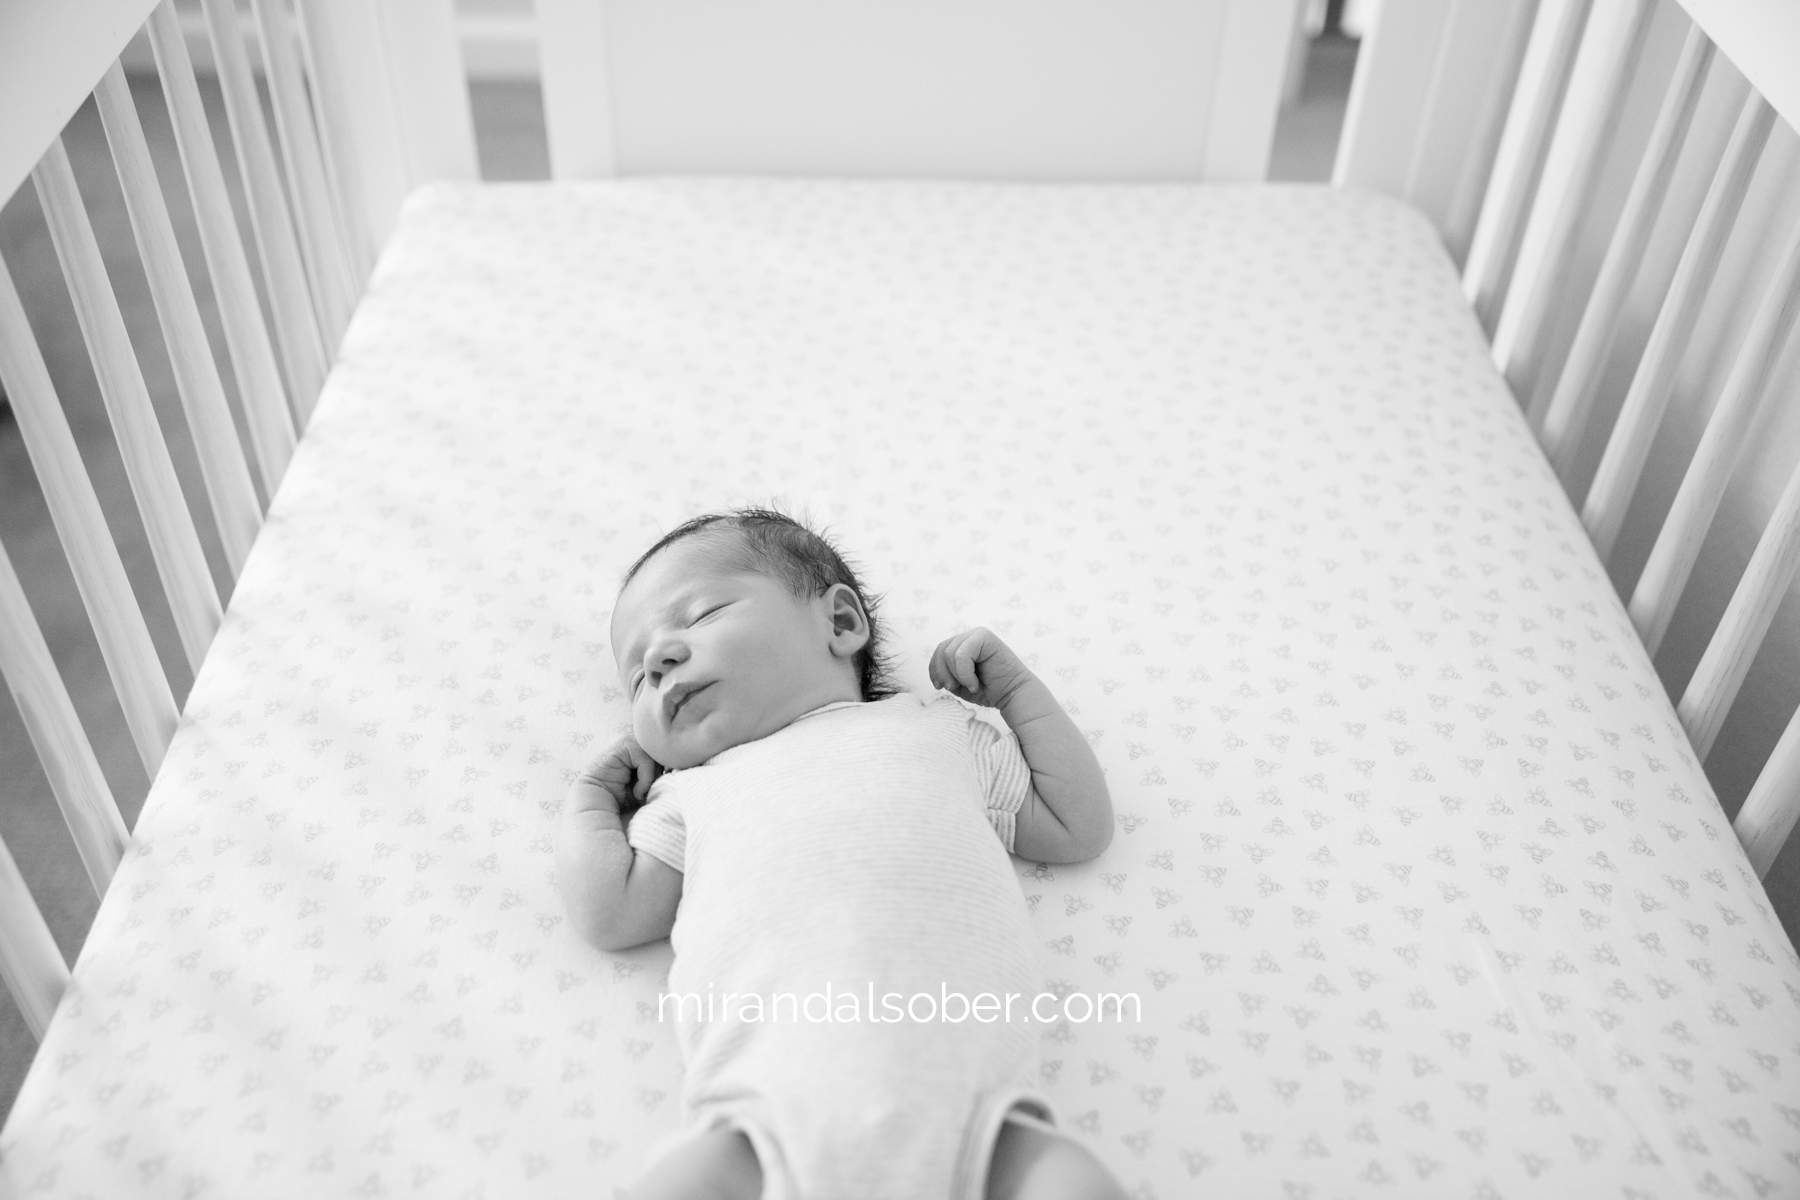 Fort Collins baby photographers, Miranda L. Sober Photography